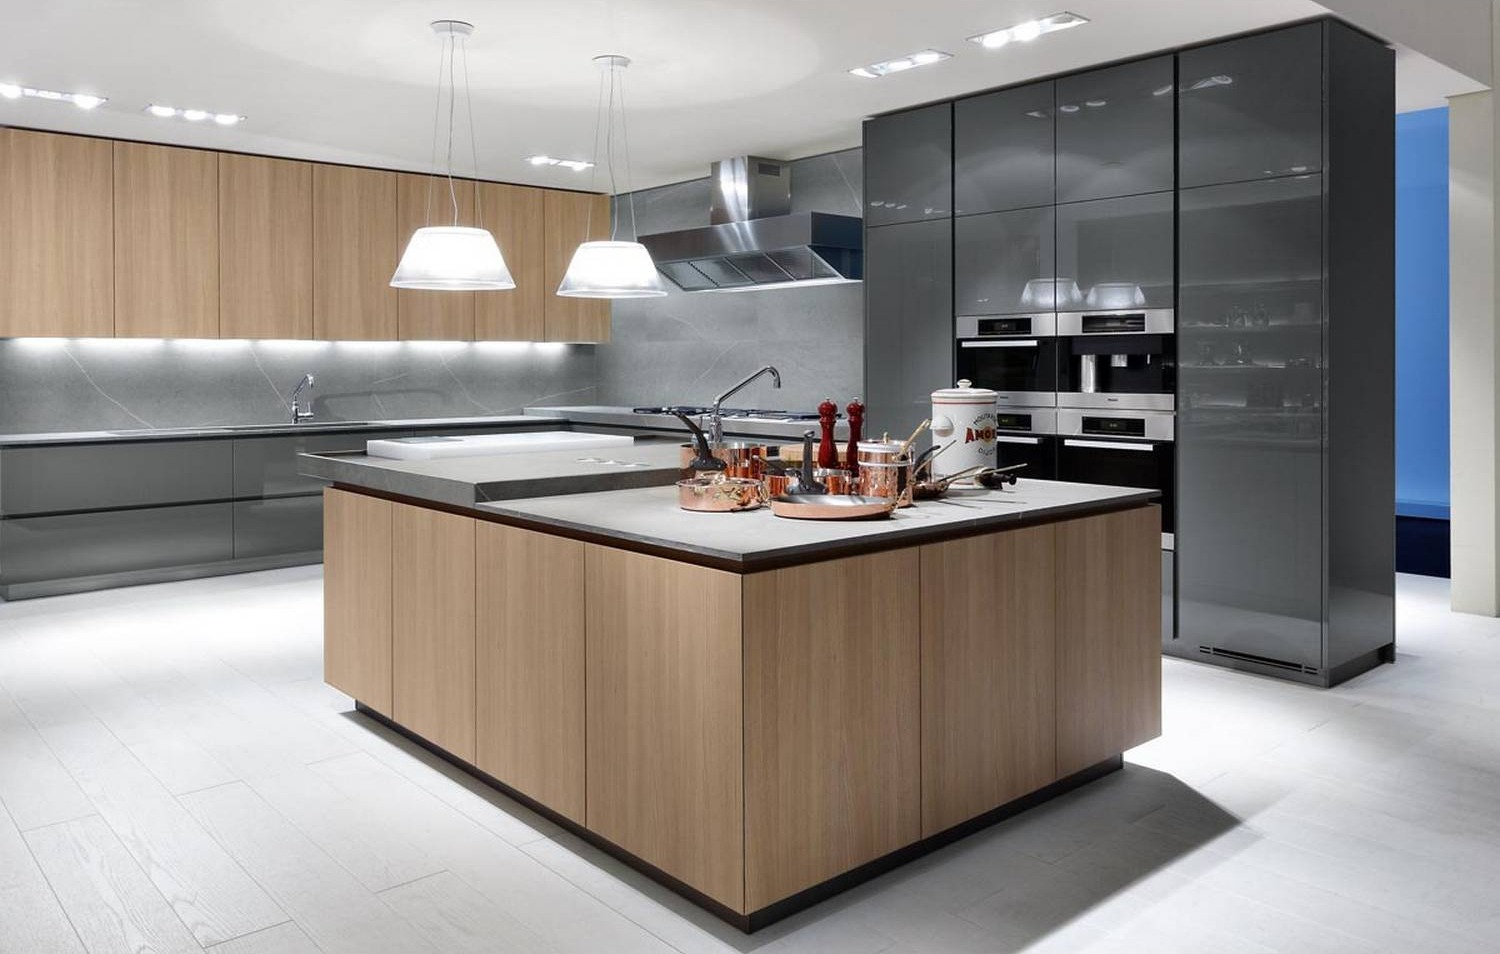 Cocina 50 Cm How To Correctly Design And Build A Kitchen Archdaily